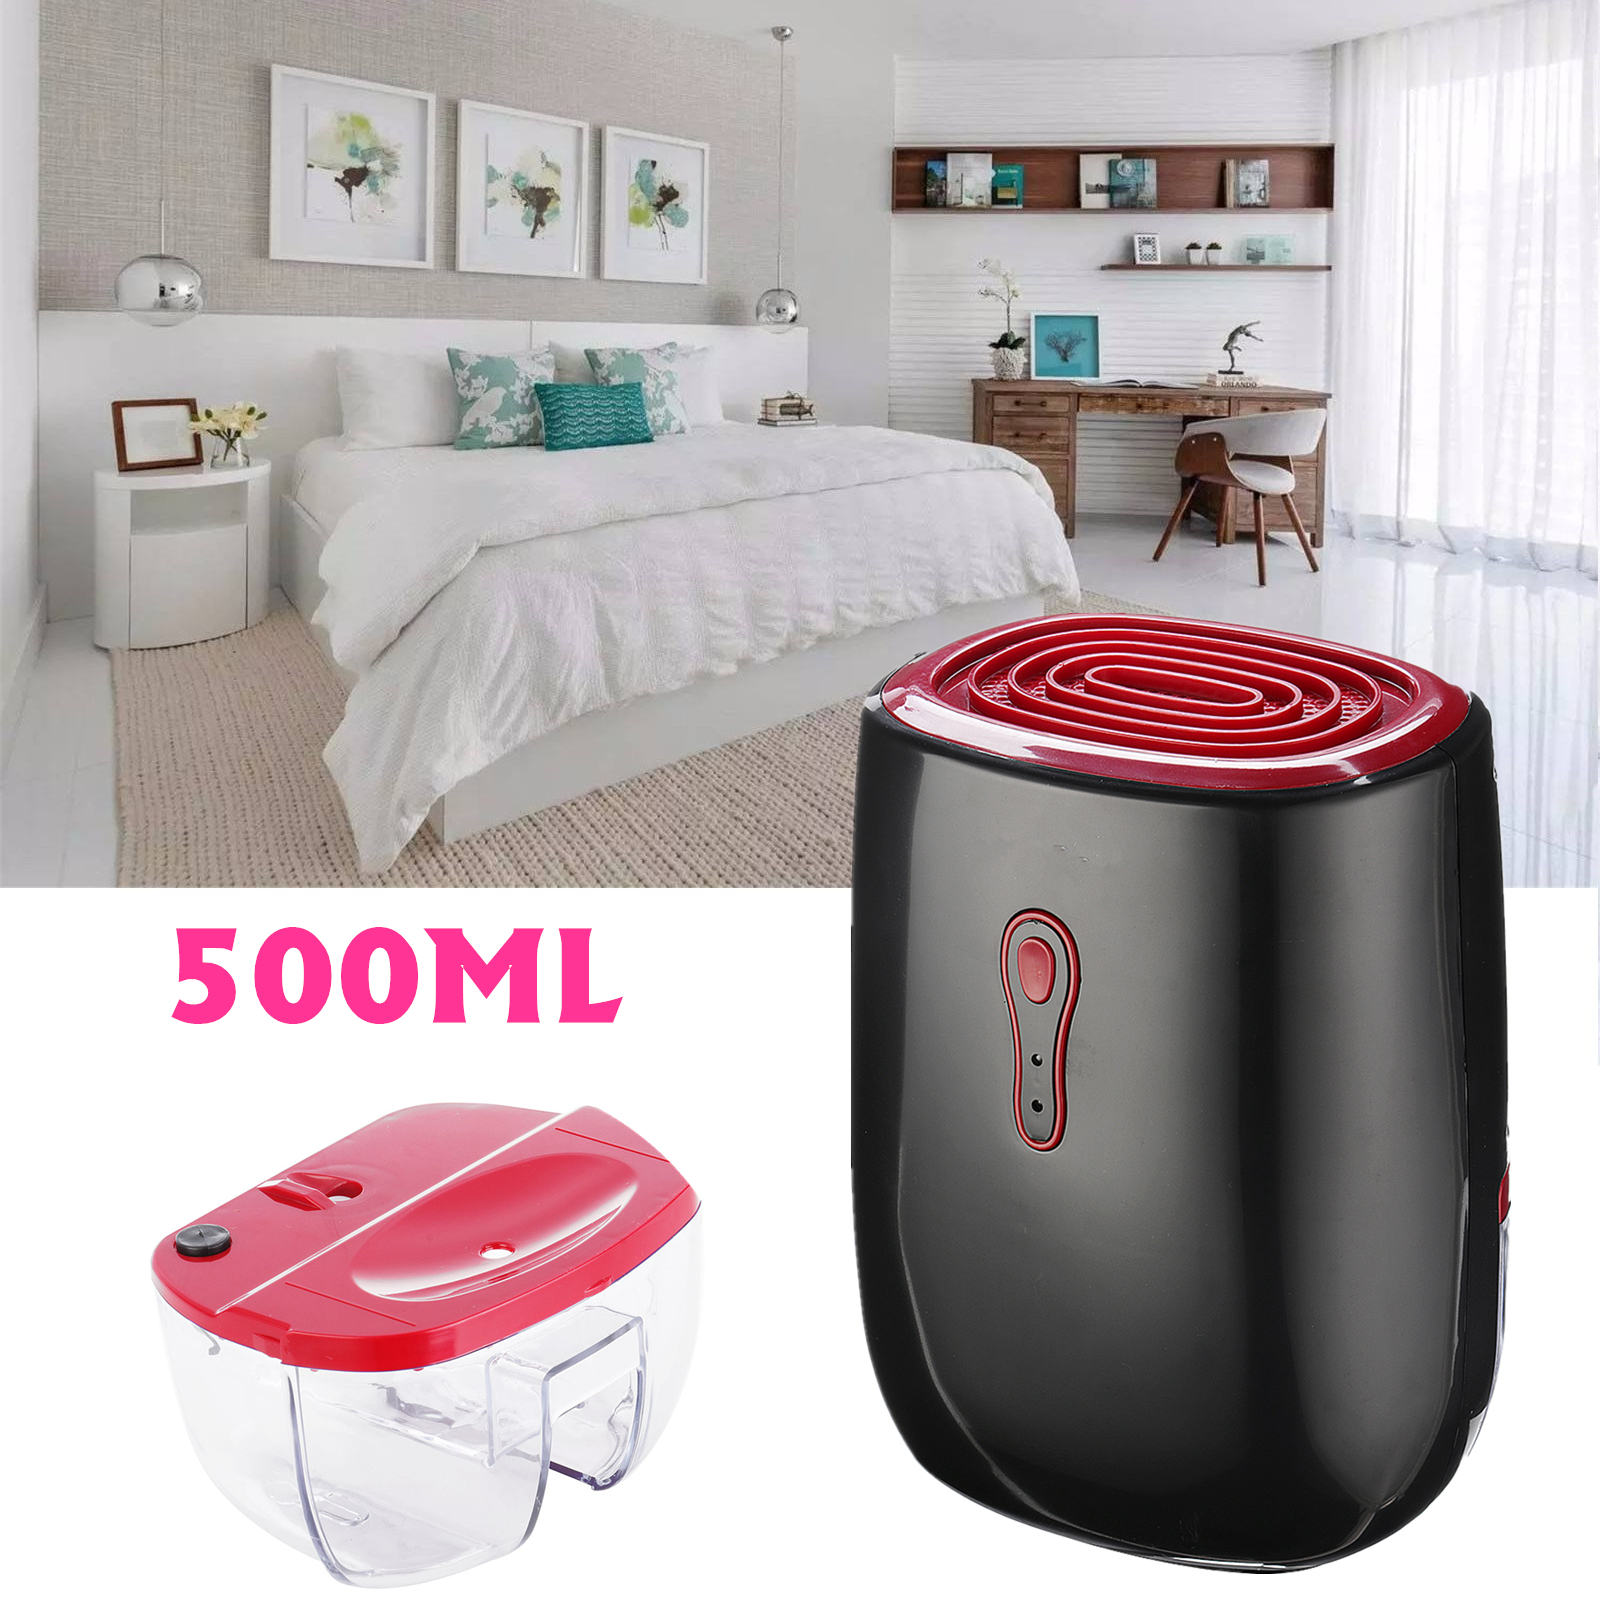 25W Electric Air Dehumidifier Portable Electric Dehumidifier Dry Air Moisture Remover 500ML